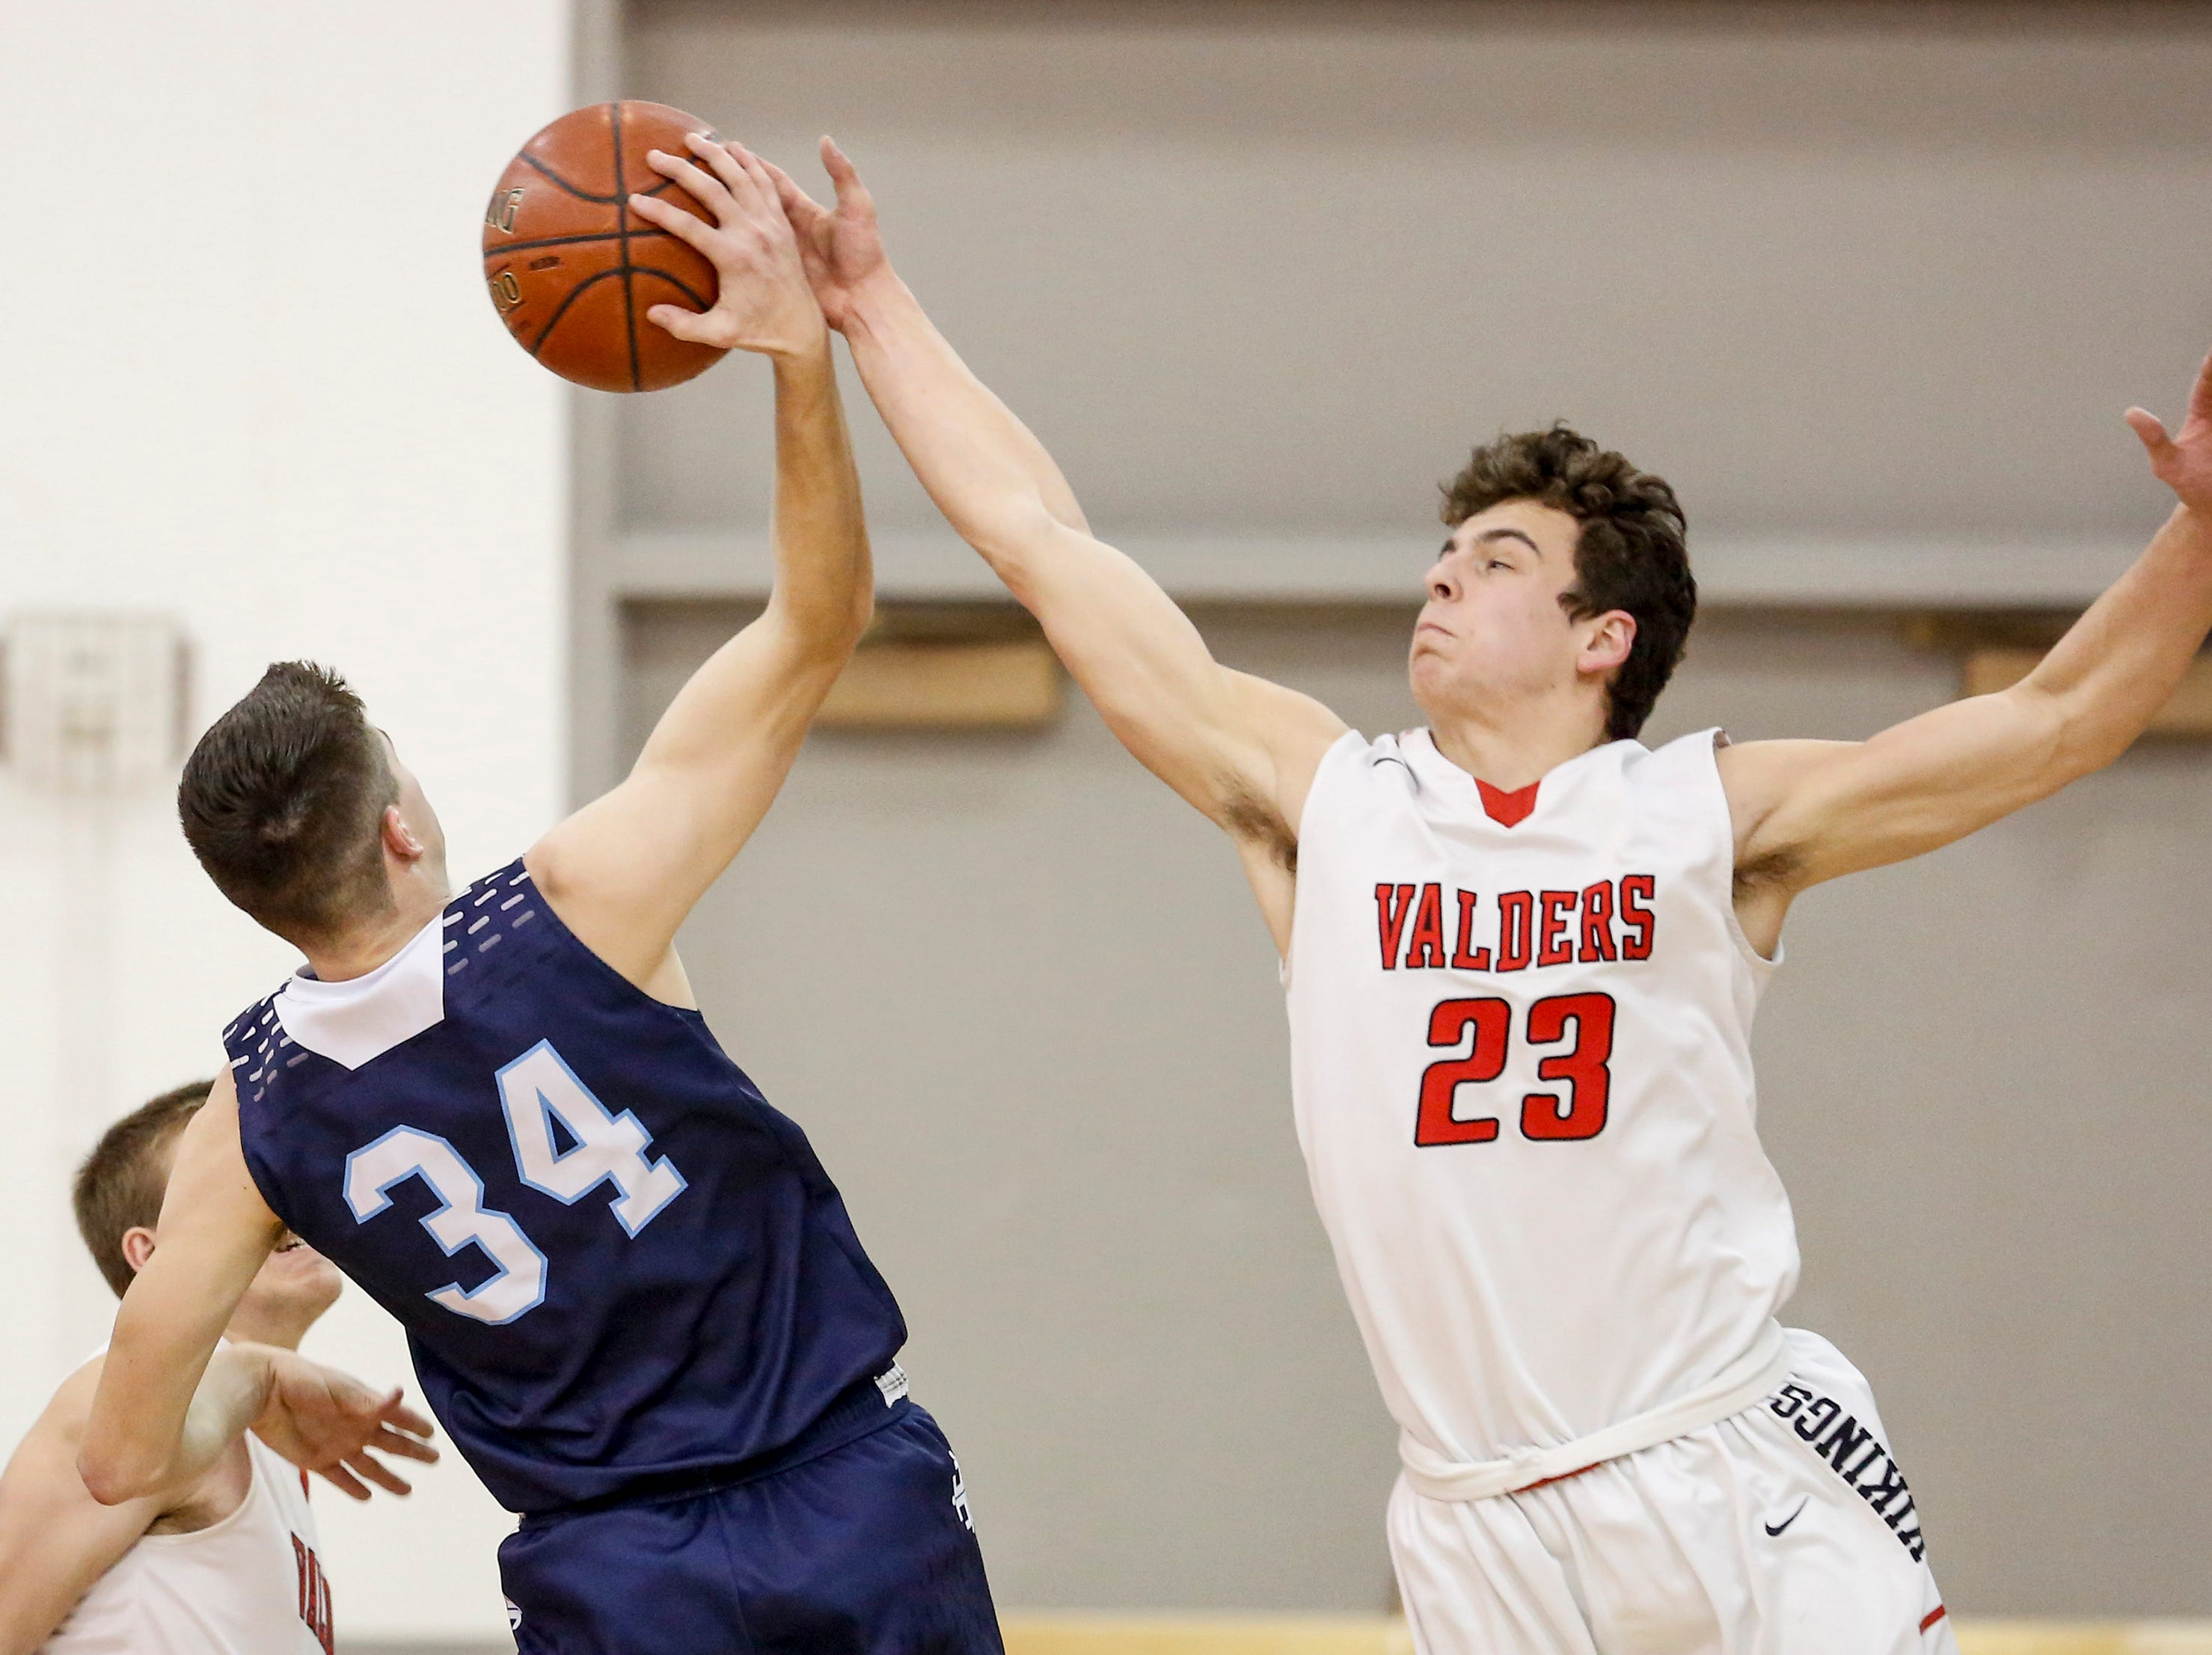 Roncalli's Ian Behringer battles Valders' Reese Brown for a rebound during an Eastern Wisconsin Conference game at Valders High School Thursday, January 3, 2019, in Valders, Wis. Joshua Clark/USA TODAY NETWORK-Wisconsin